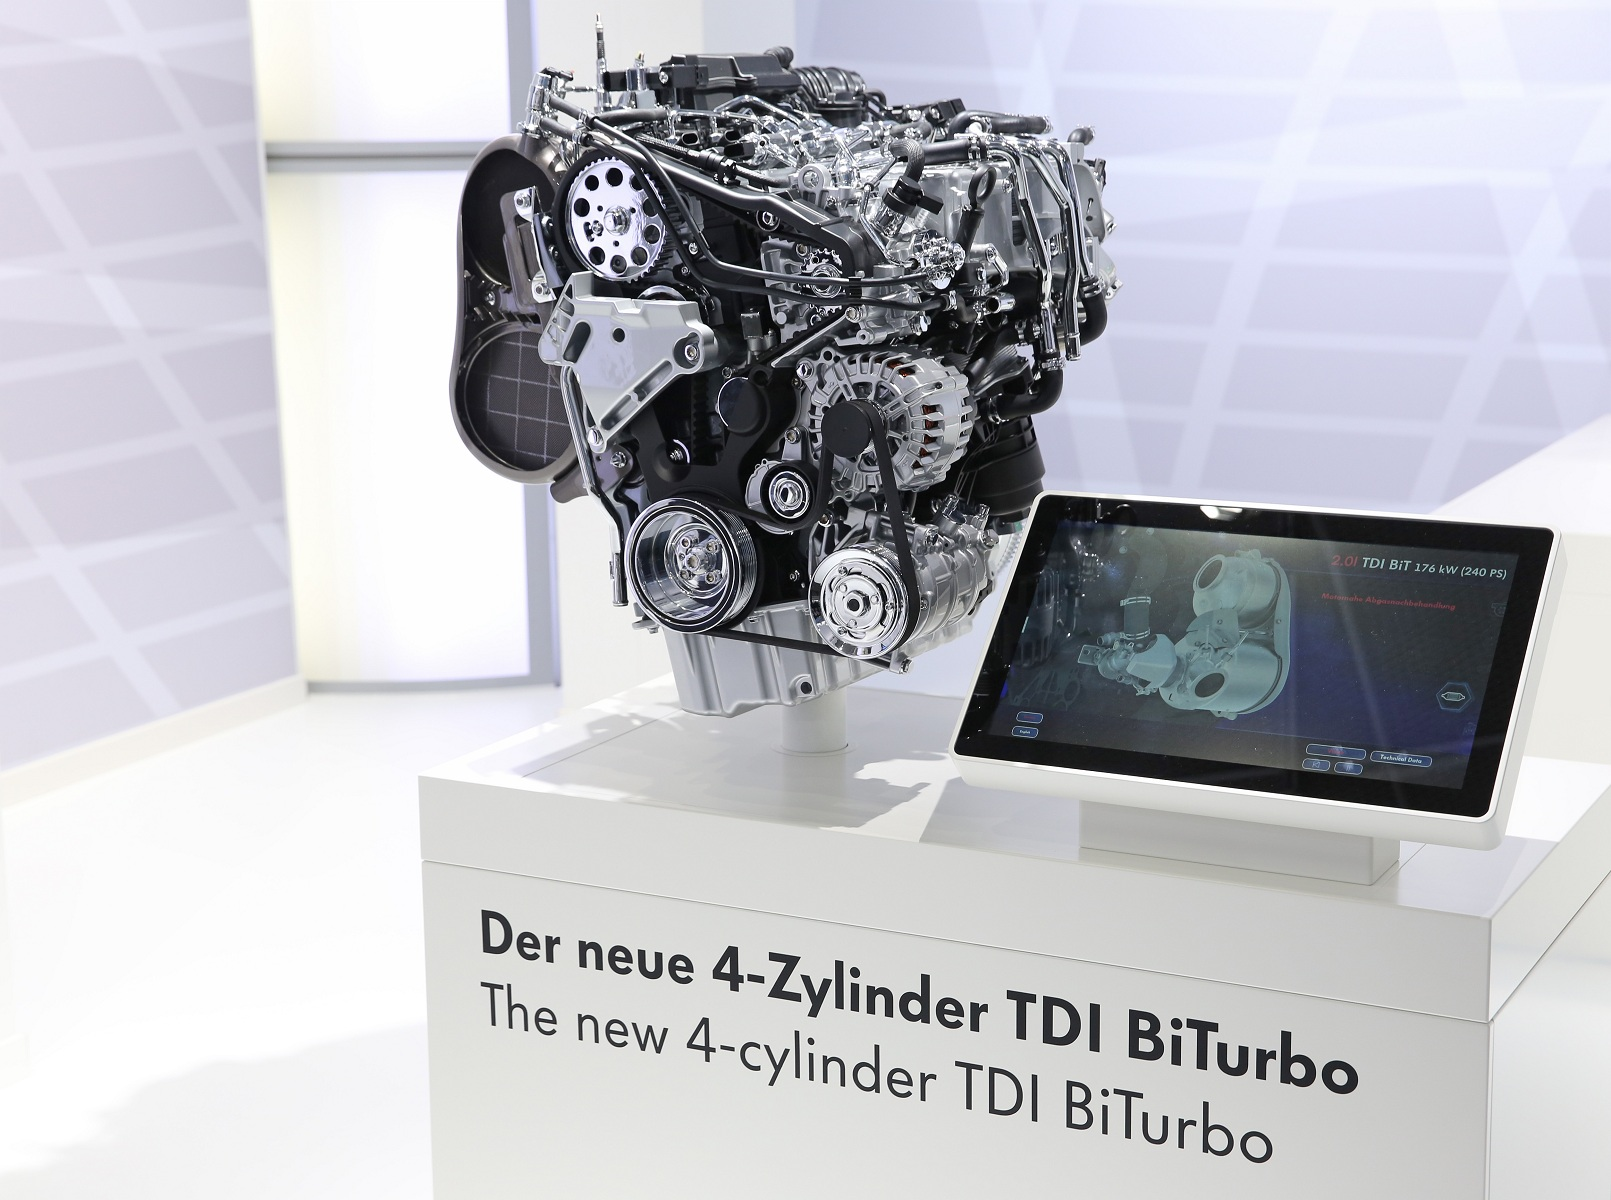 New 2.0l TDI engine